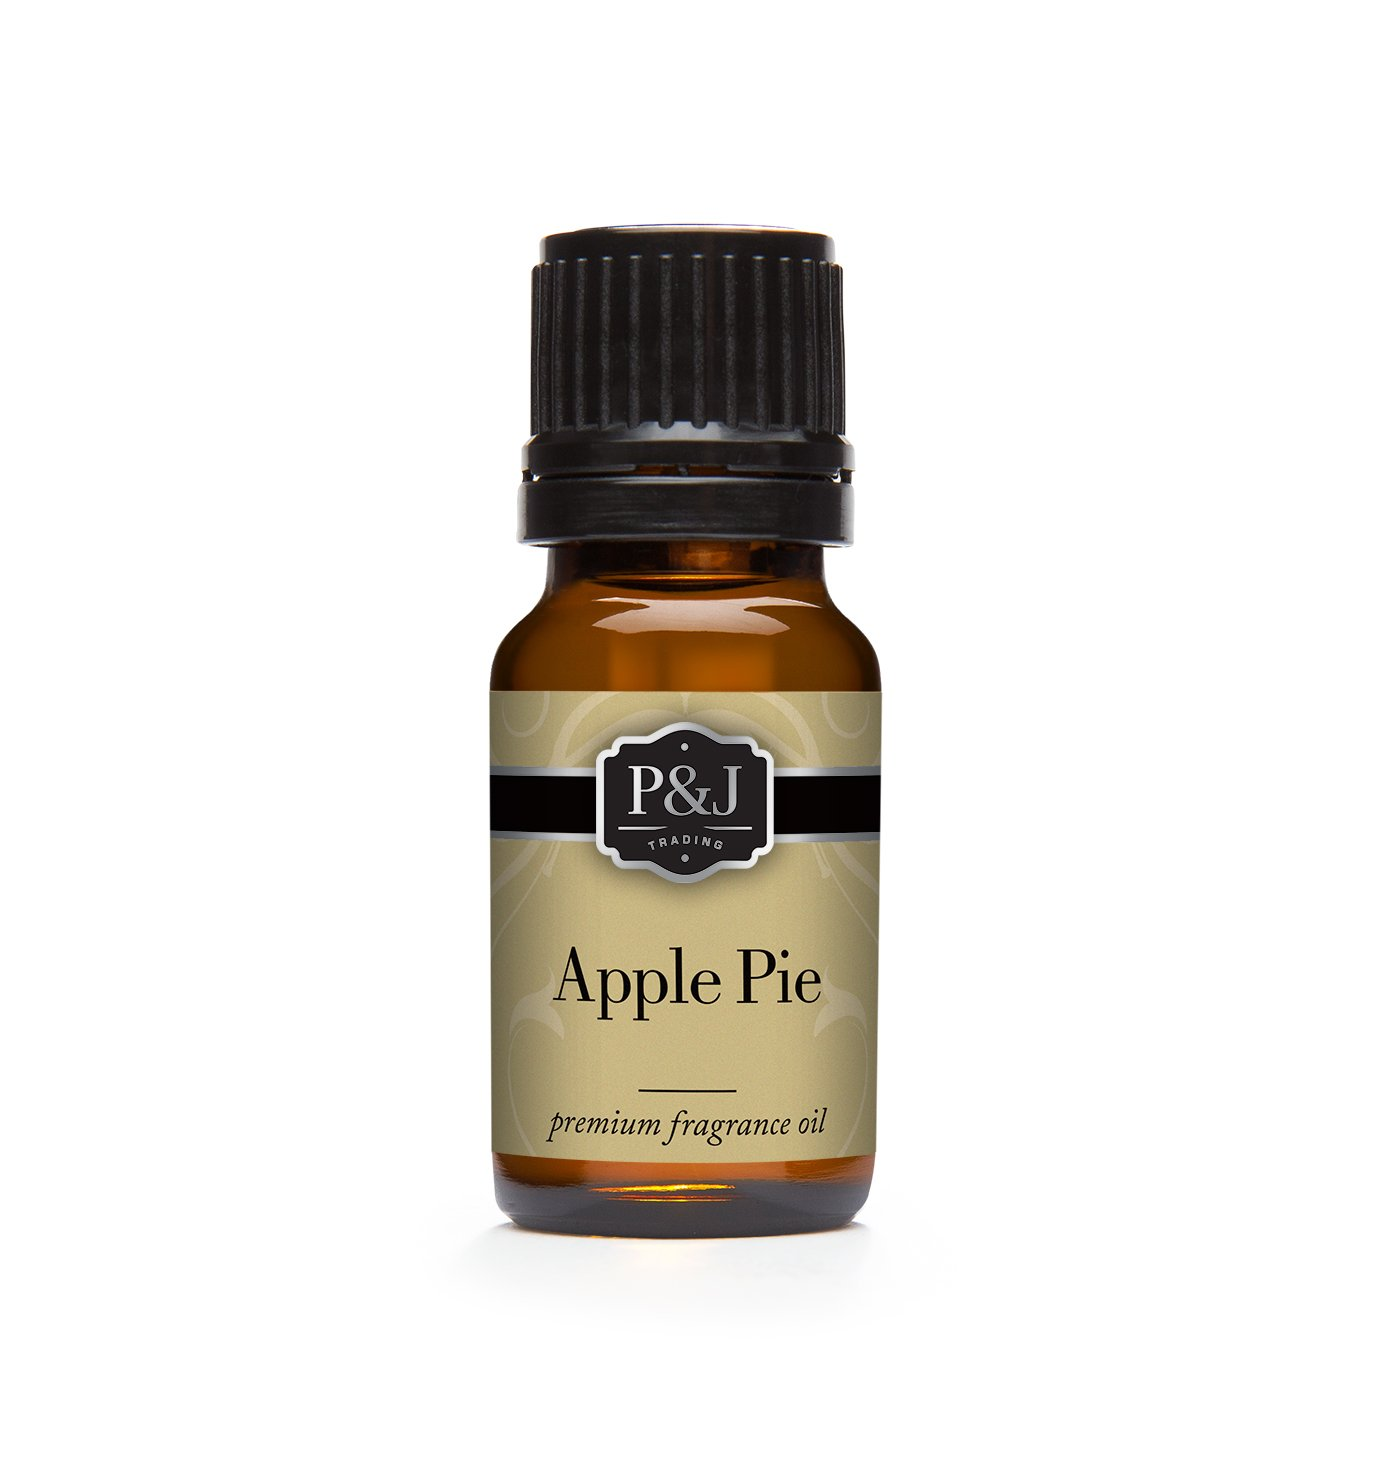 Apple Pie Fragrance Oil - Premium Grade Scented Oil - 10ml